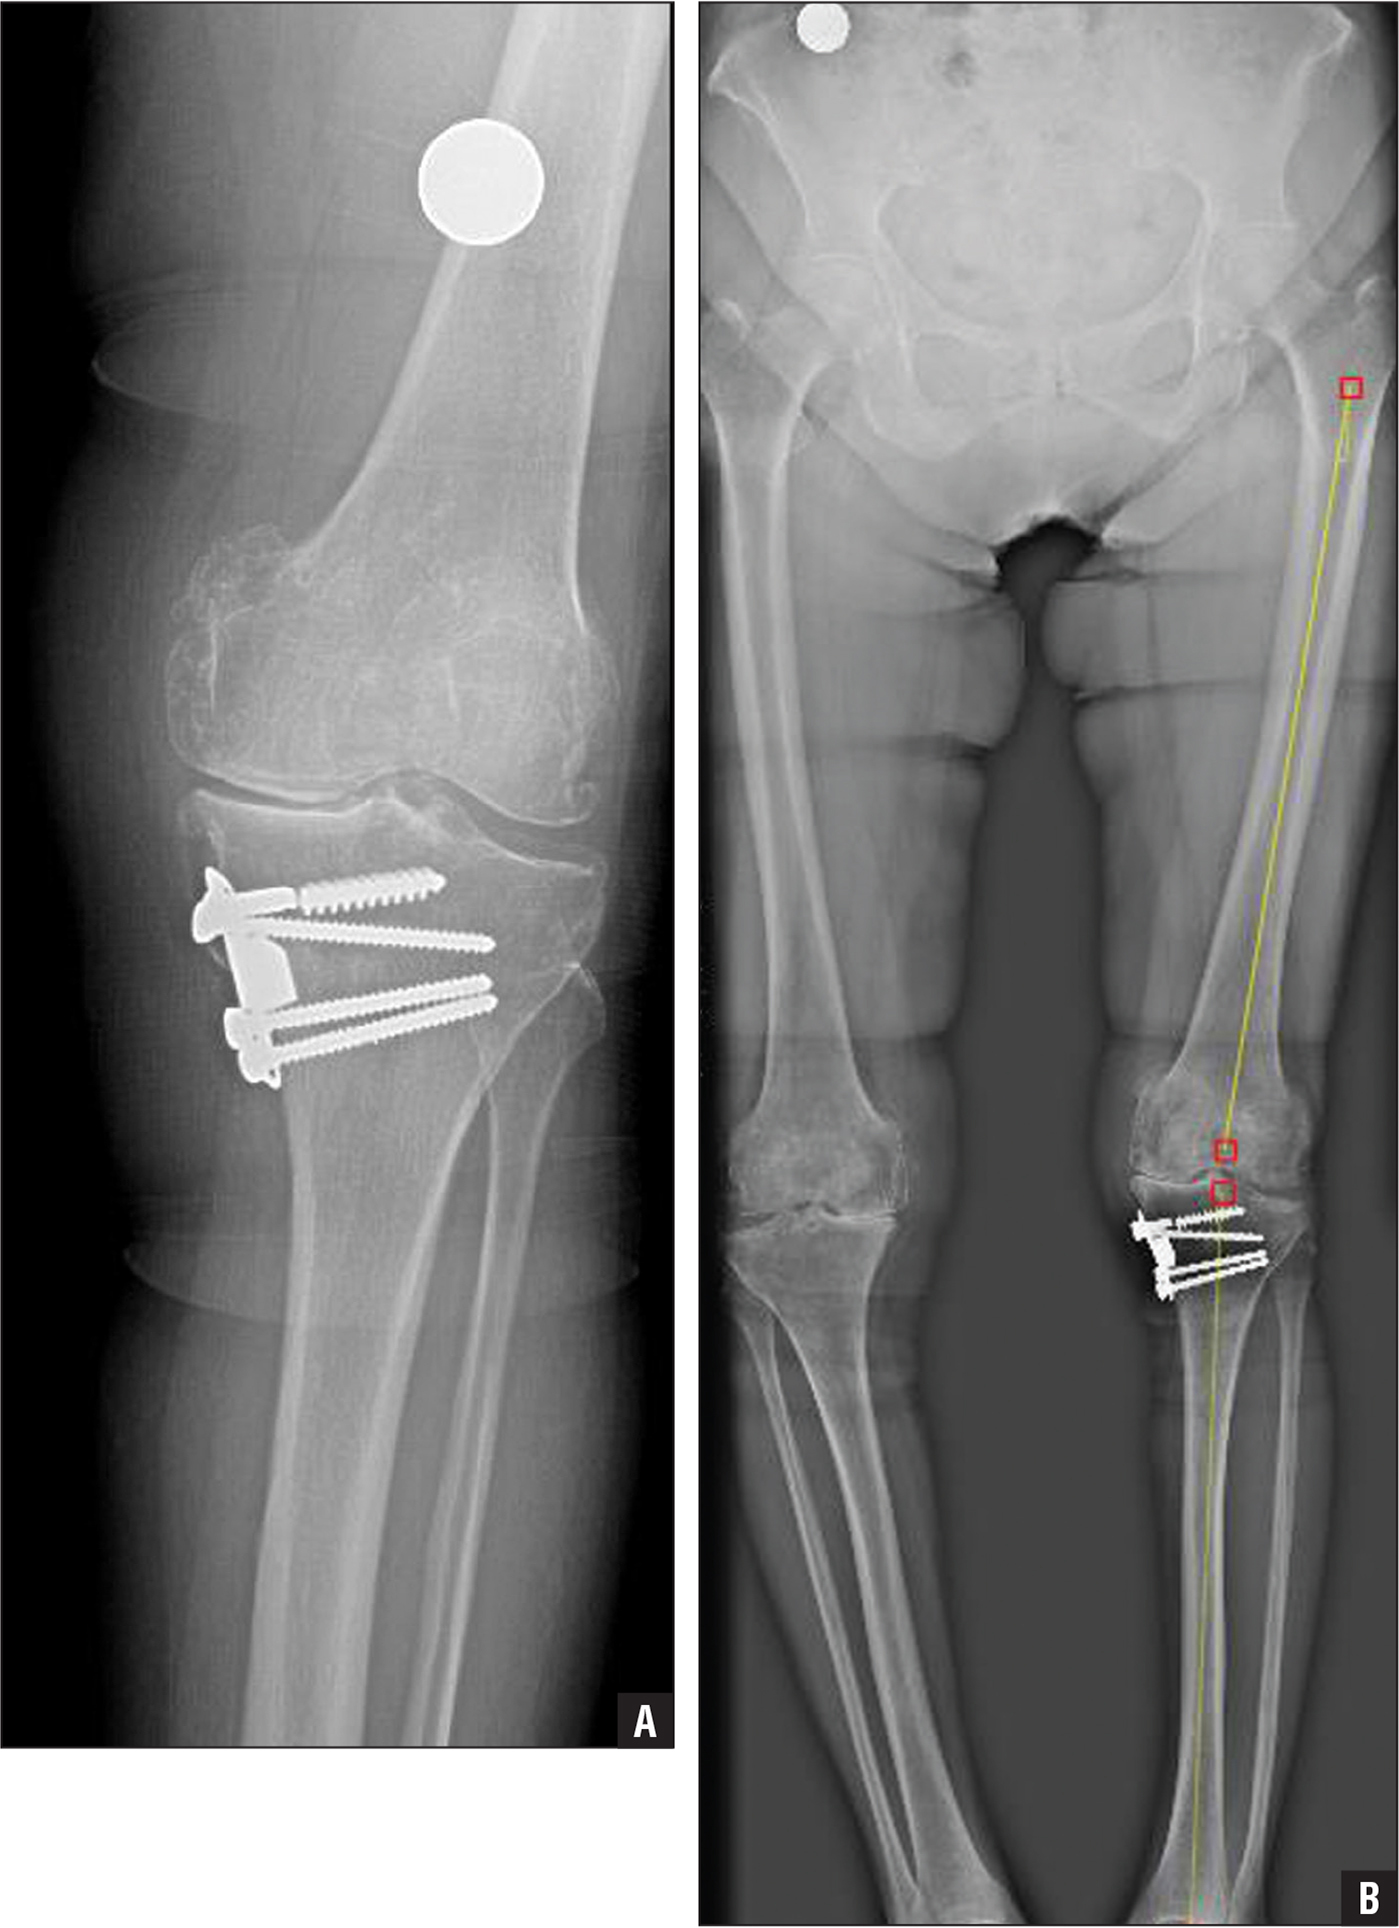 Postoperative anteroposterior radiograph of the knee (A) and orthoroentgenograph (B) of a patient with a broken screw and conservative follow-up.